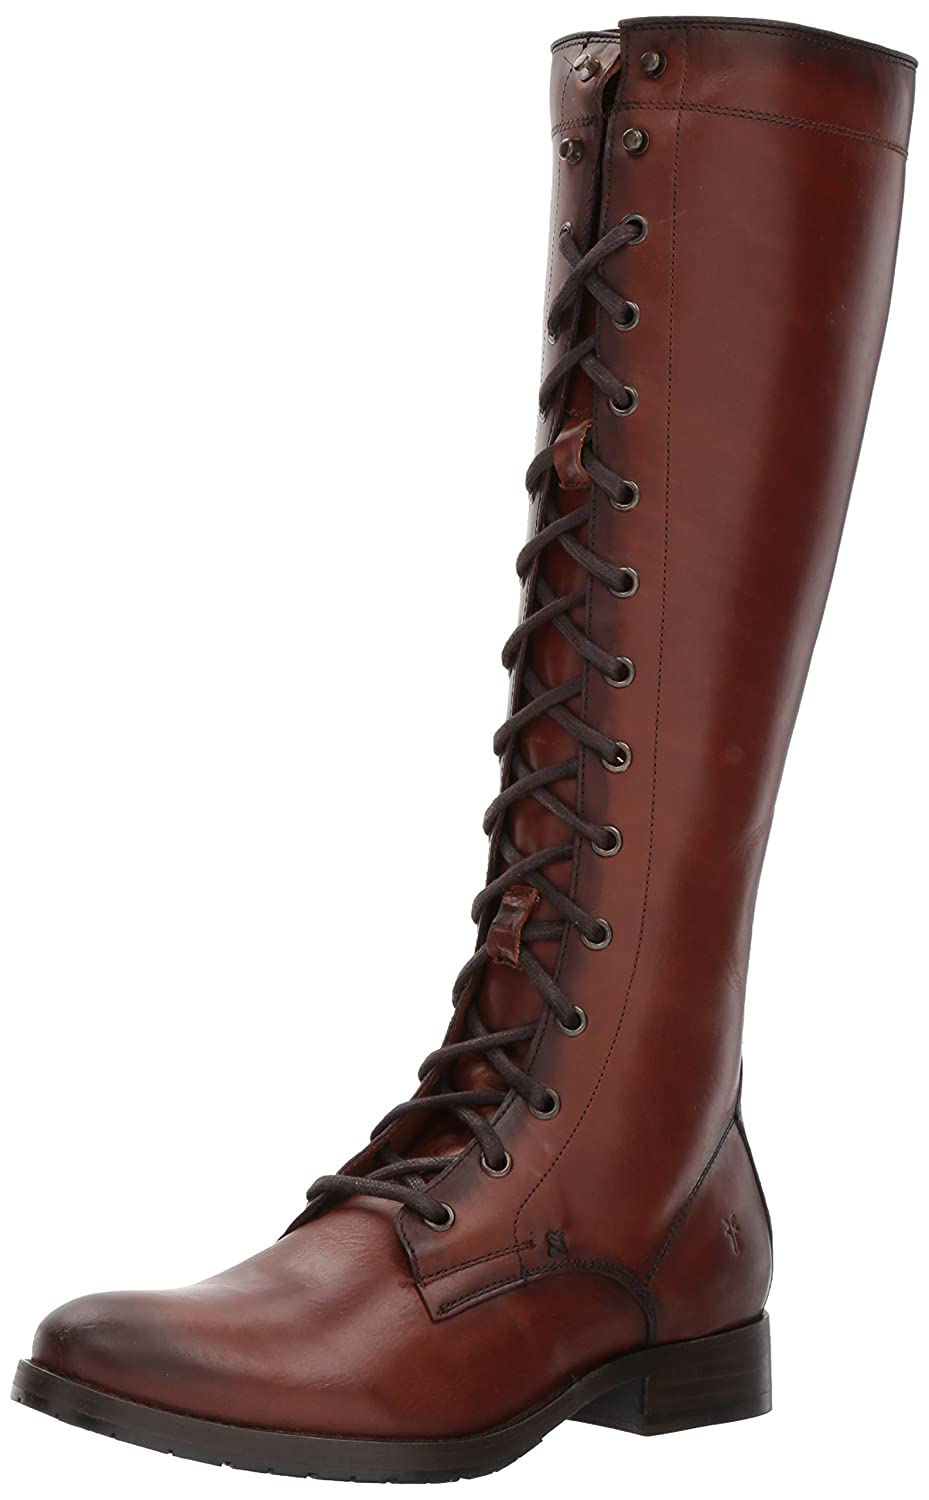 FRYE Women's Melissa Tall Lace Riding Boot B06X14T4MK 7.5 B(M) US|Redwood